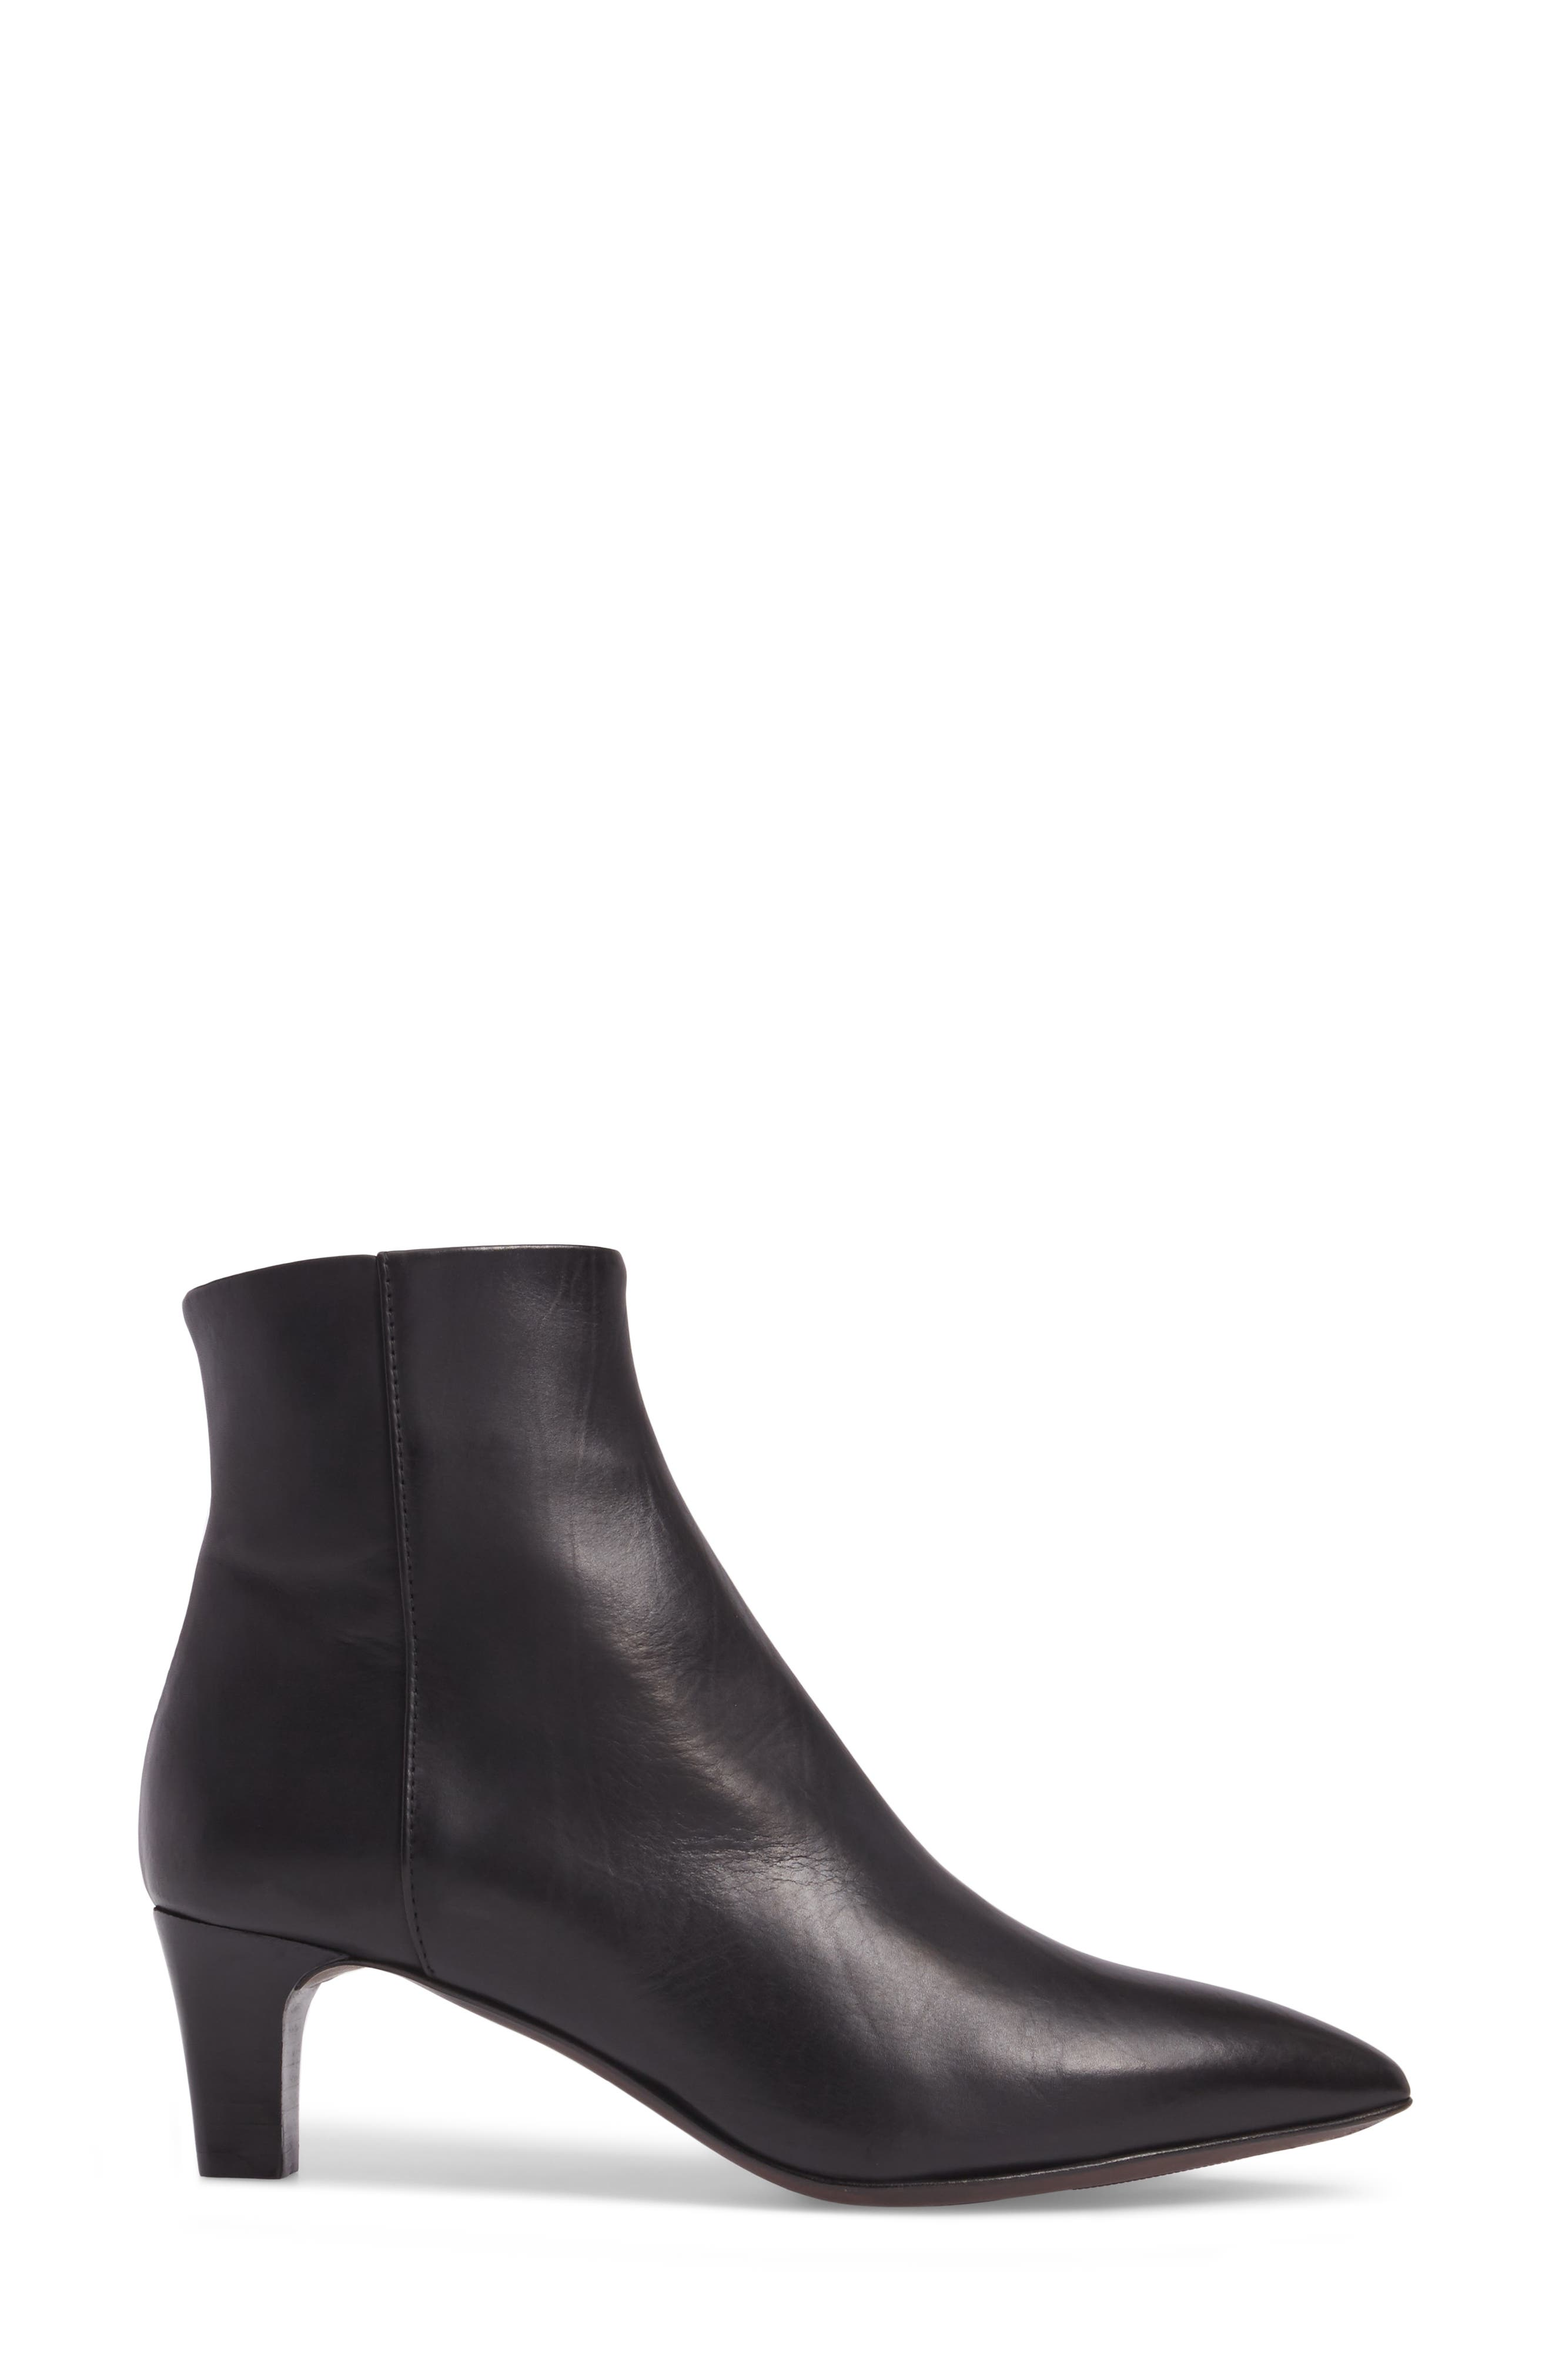 AG Pointed Toe Bootie,                             Alternate thumbnail 3, color,                             001